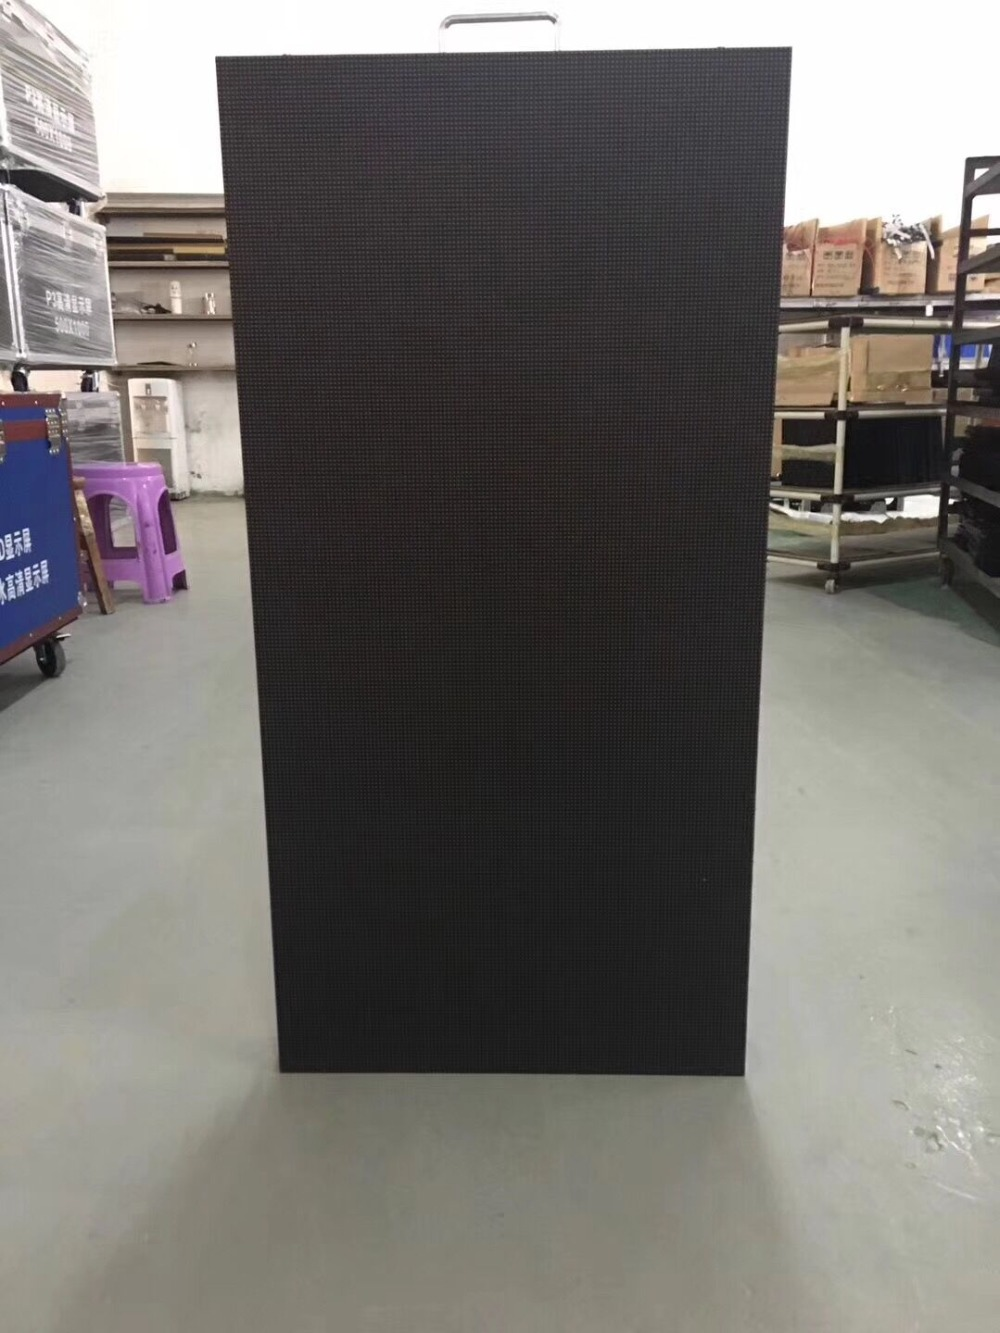 4pcs 500x1000mm Indoor Led Display Screen P3.91 Indoor Die Cast Aluminum Cabinet For Rental Advertising Video Wall Led Screen